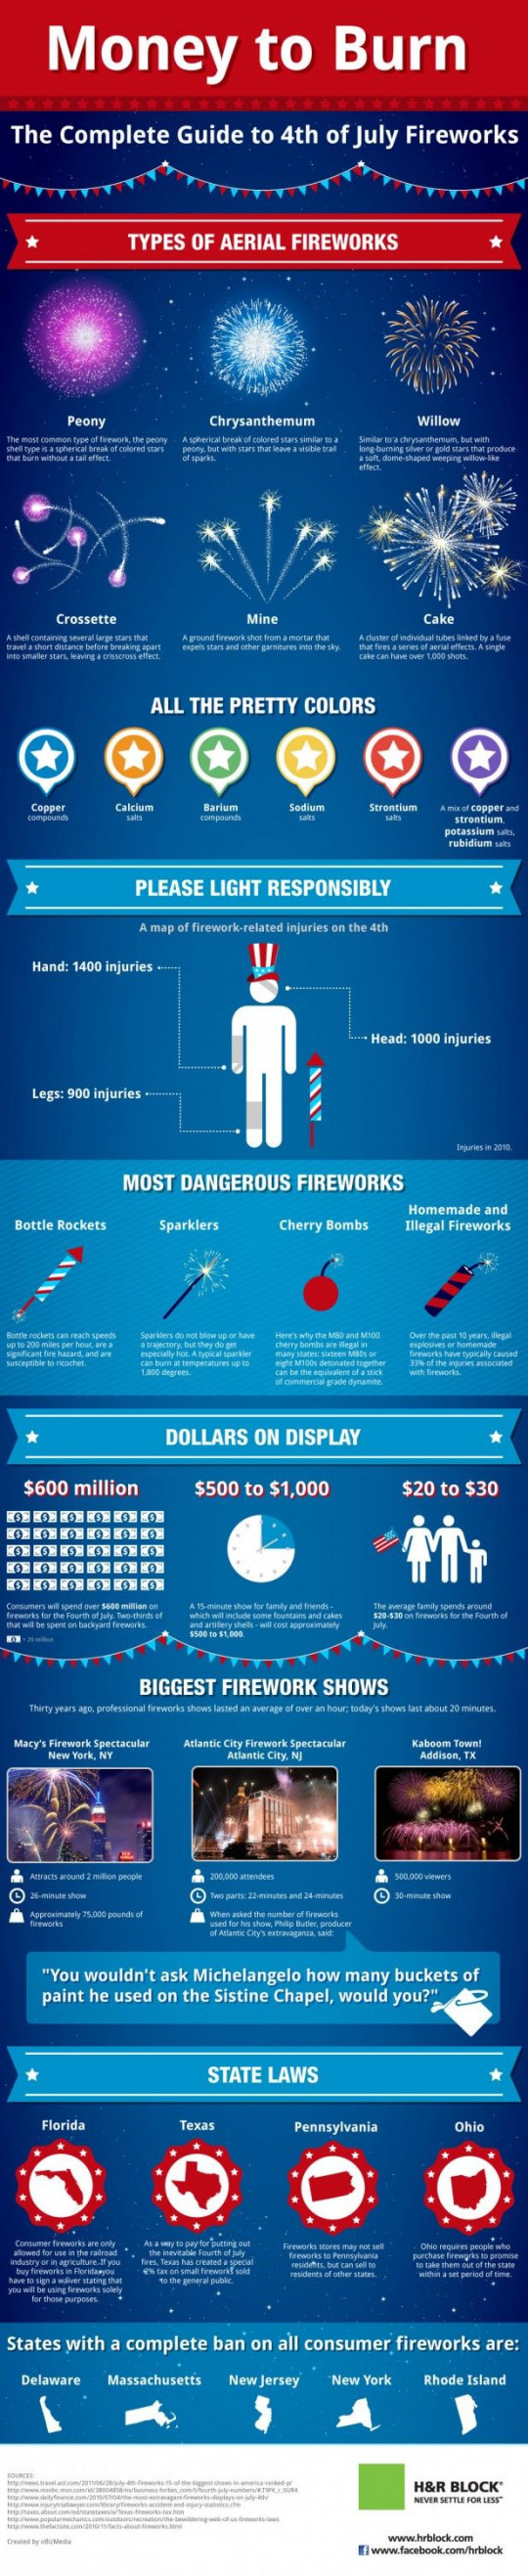 Types of aerial fireworks